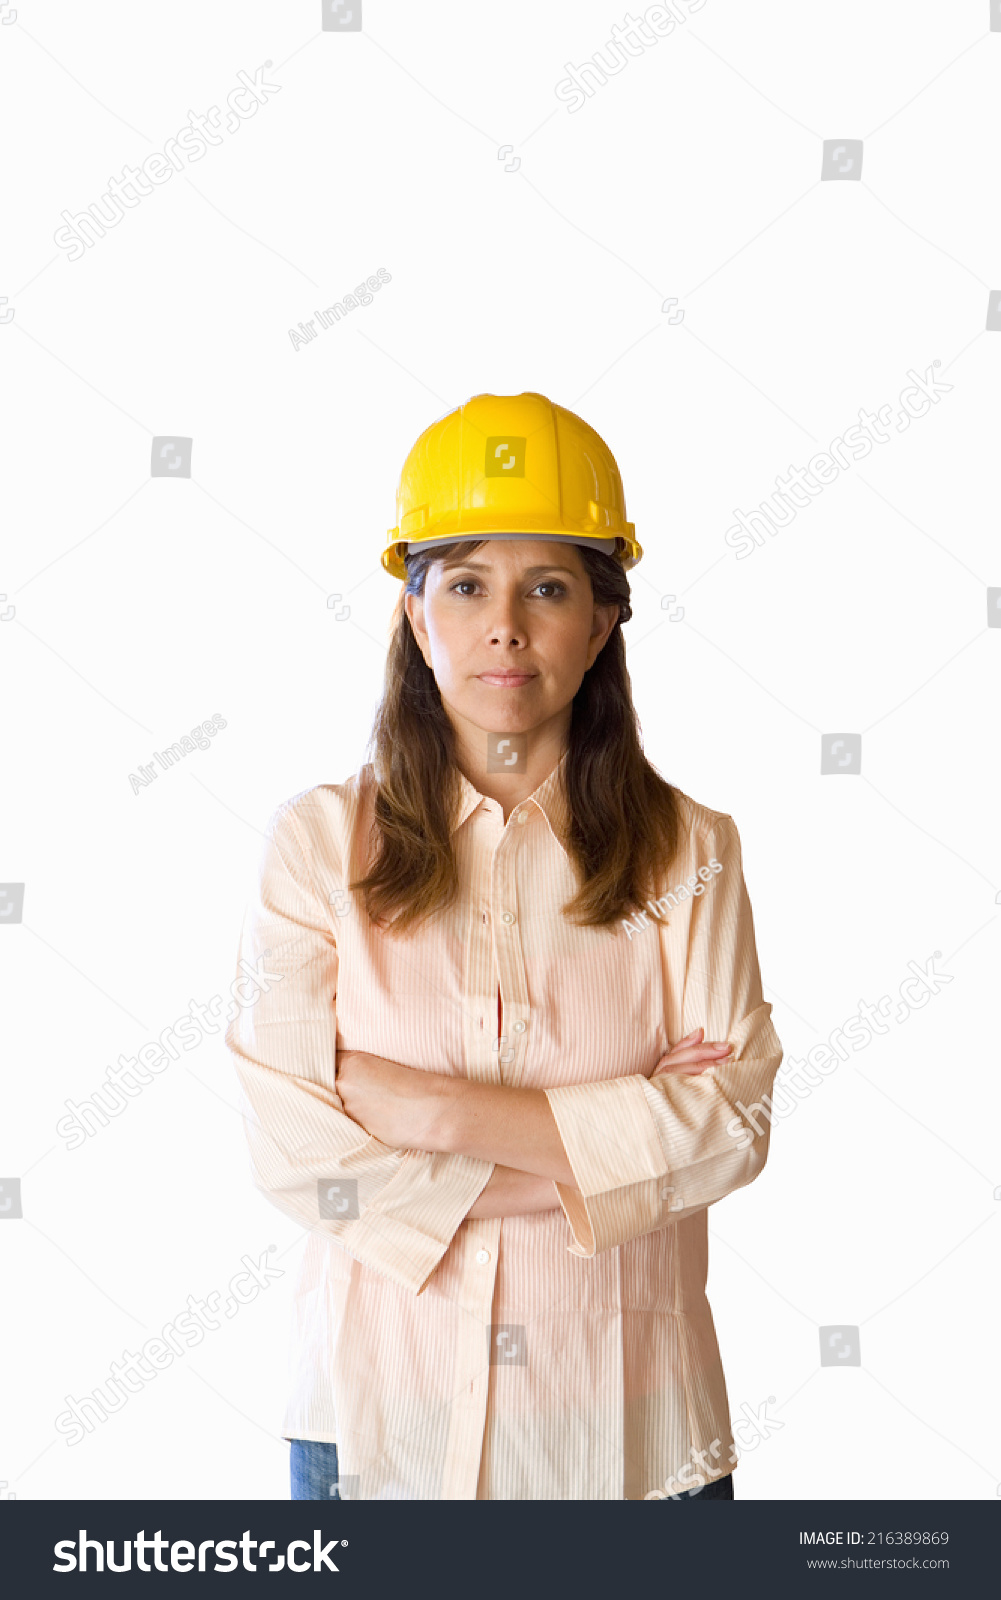 woman hard hat arms folded cut stock photo royalty free 216389869